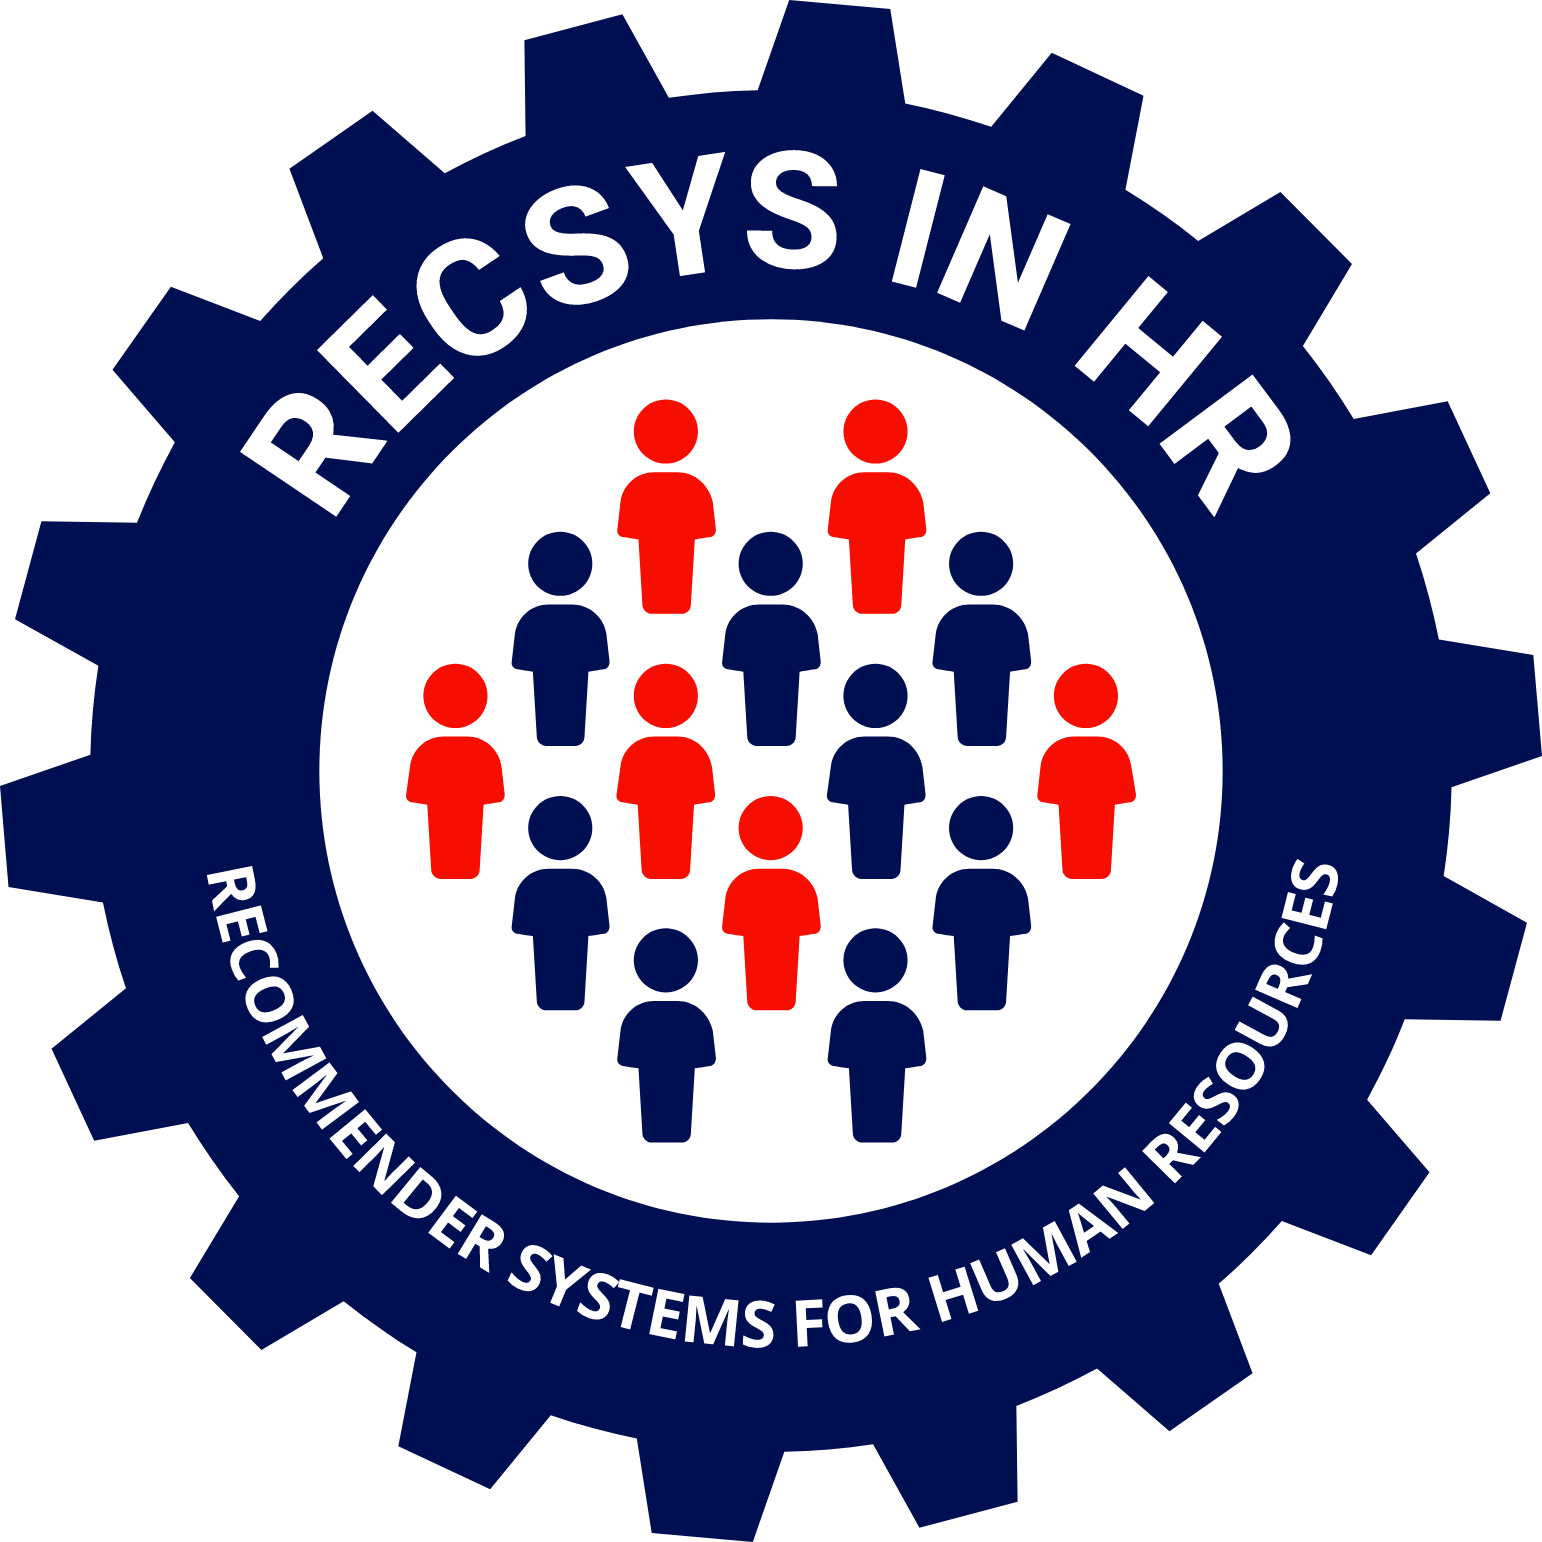 RecSys in HR 2021